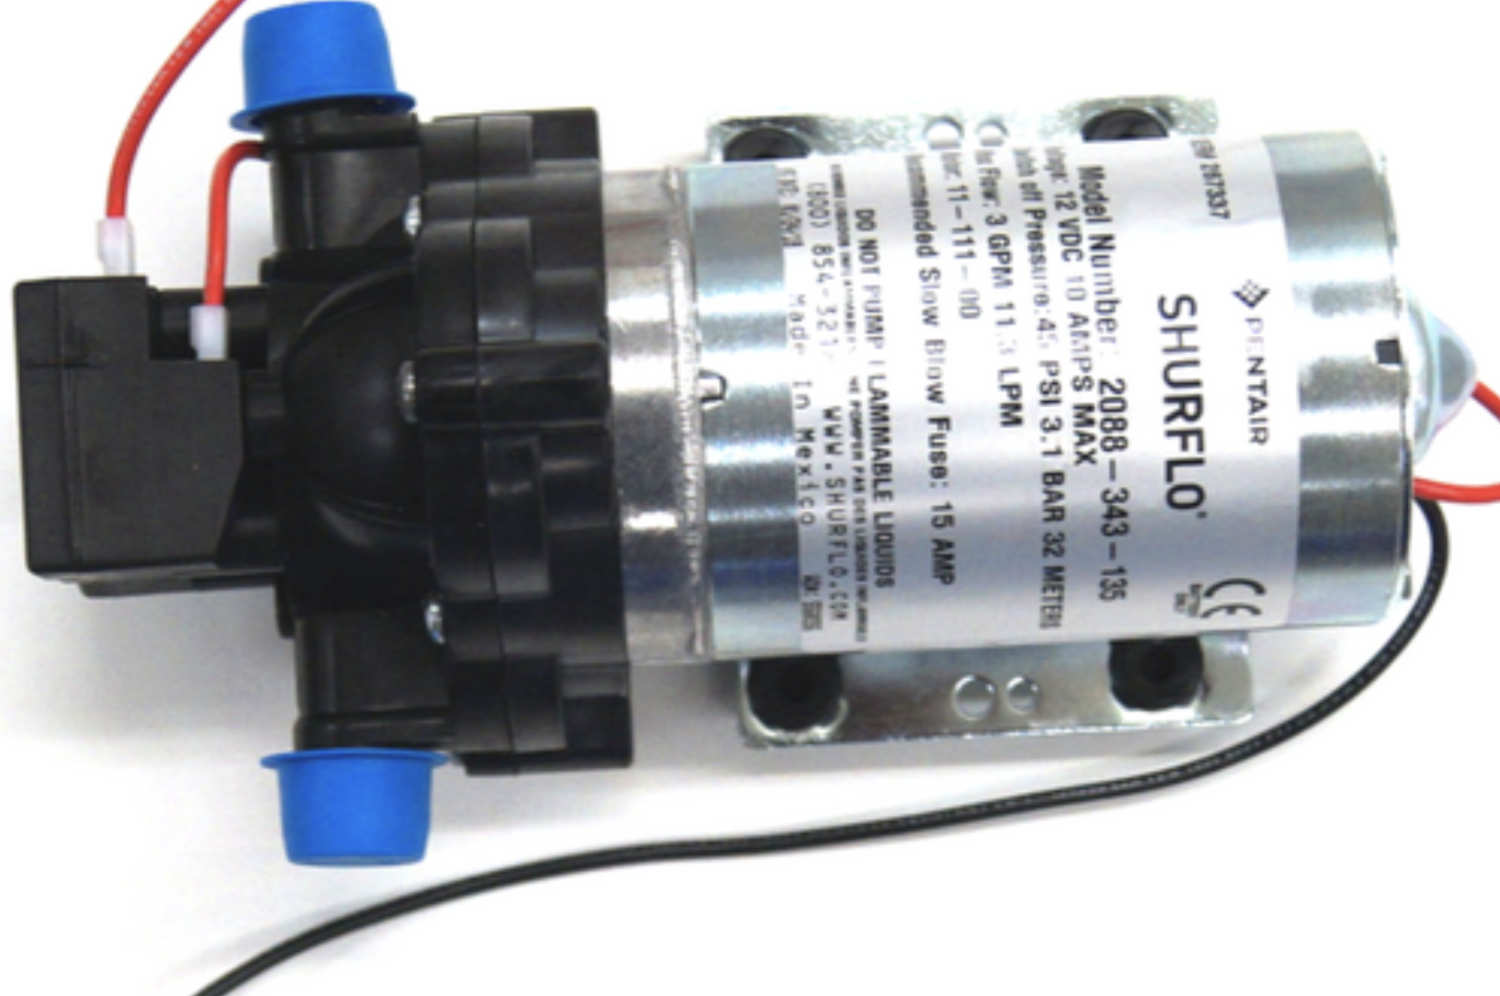 Replacement Spot Sprayer Pump for Smucker Weed Wipers